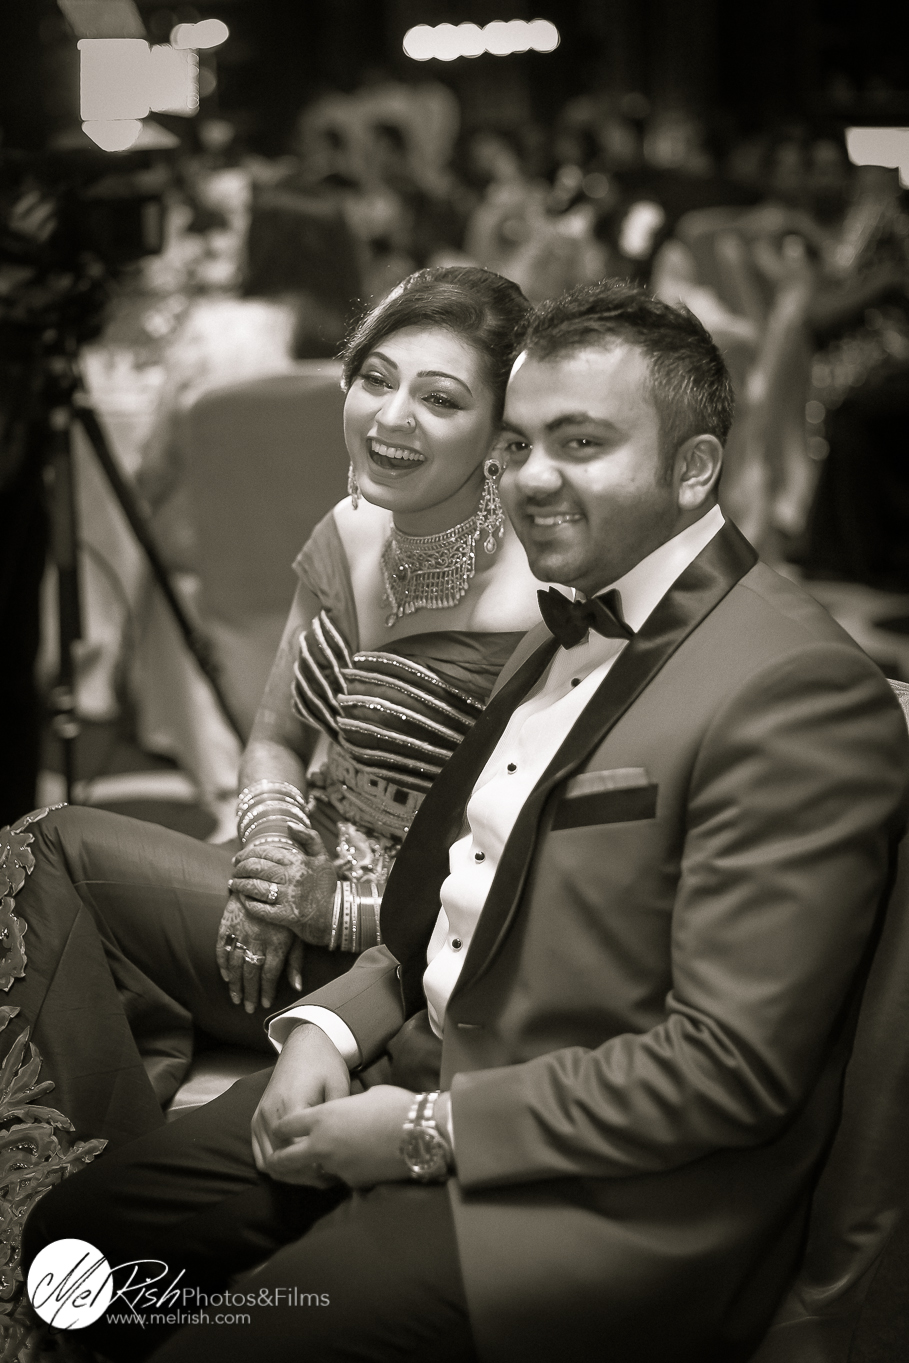 Dubai wedding videography